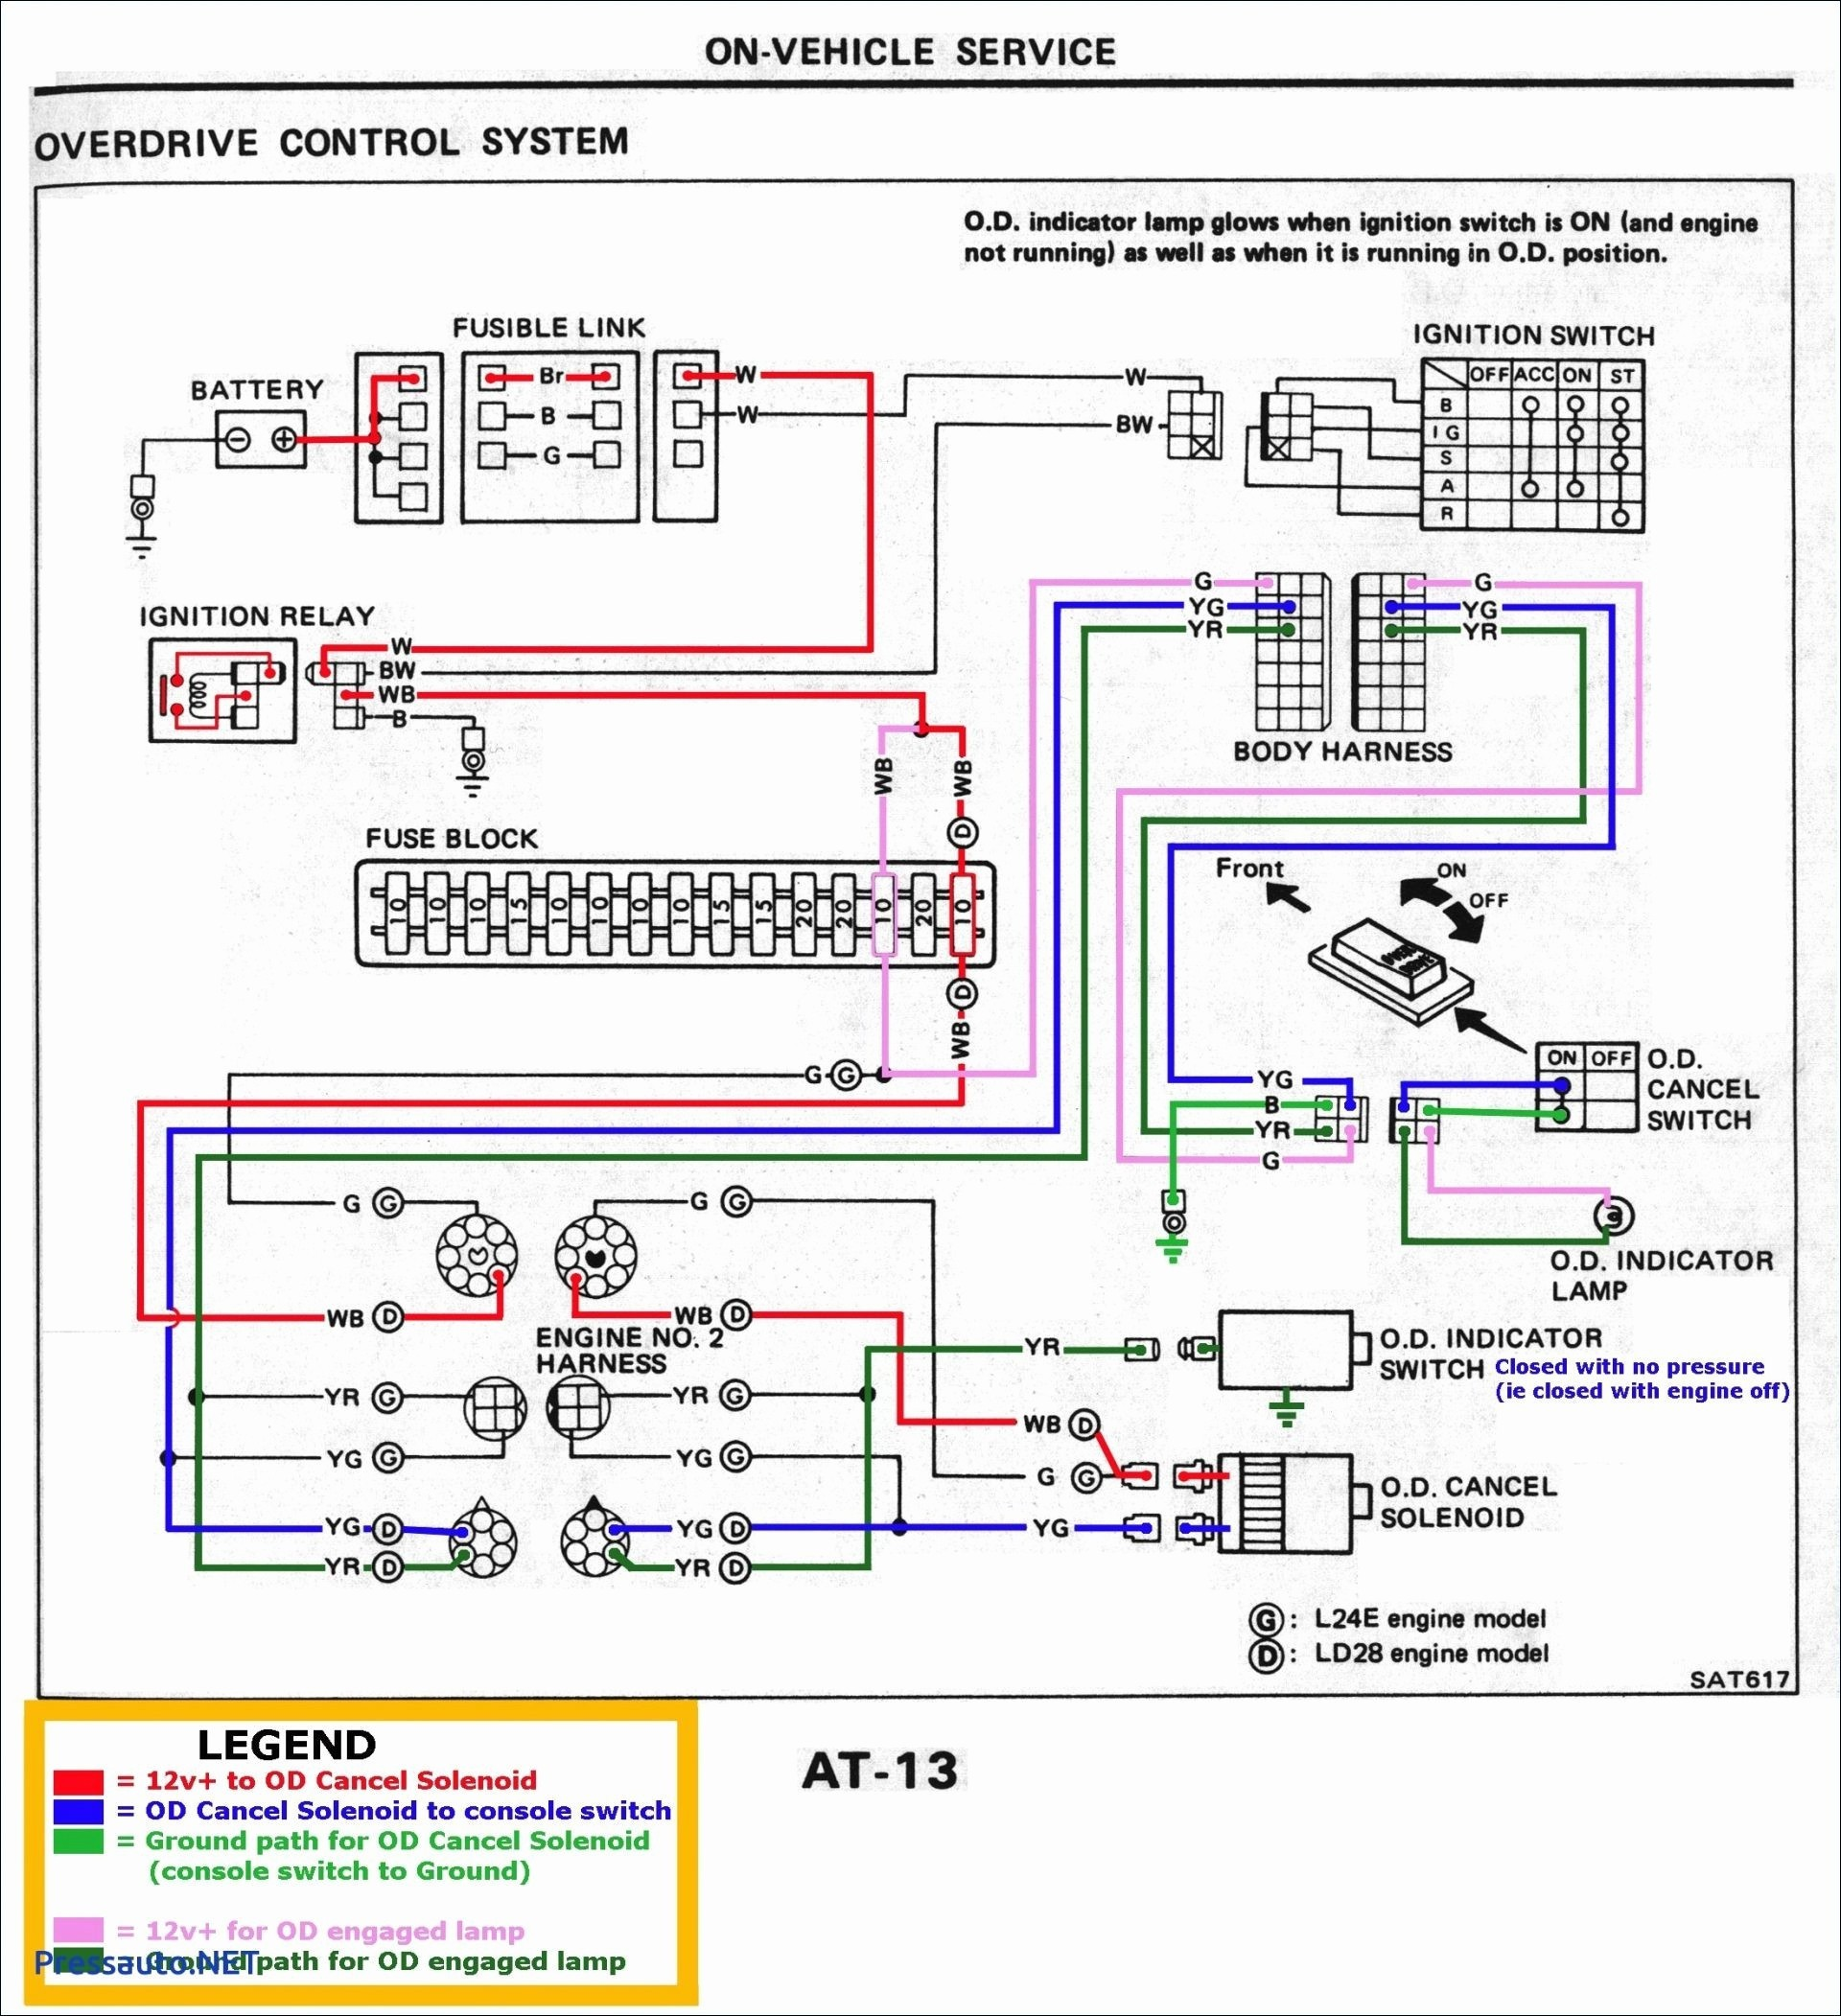 2000 Dodge Caravan Wiring Diagram 2008 Dodge Grand Caravan ... on